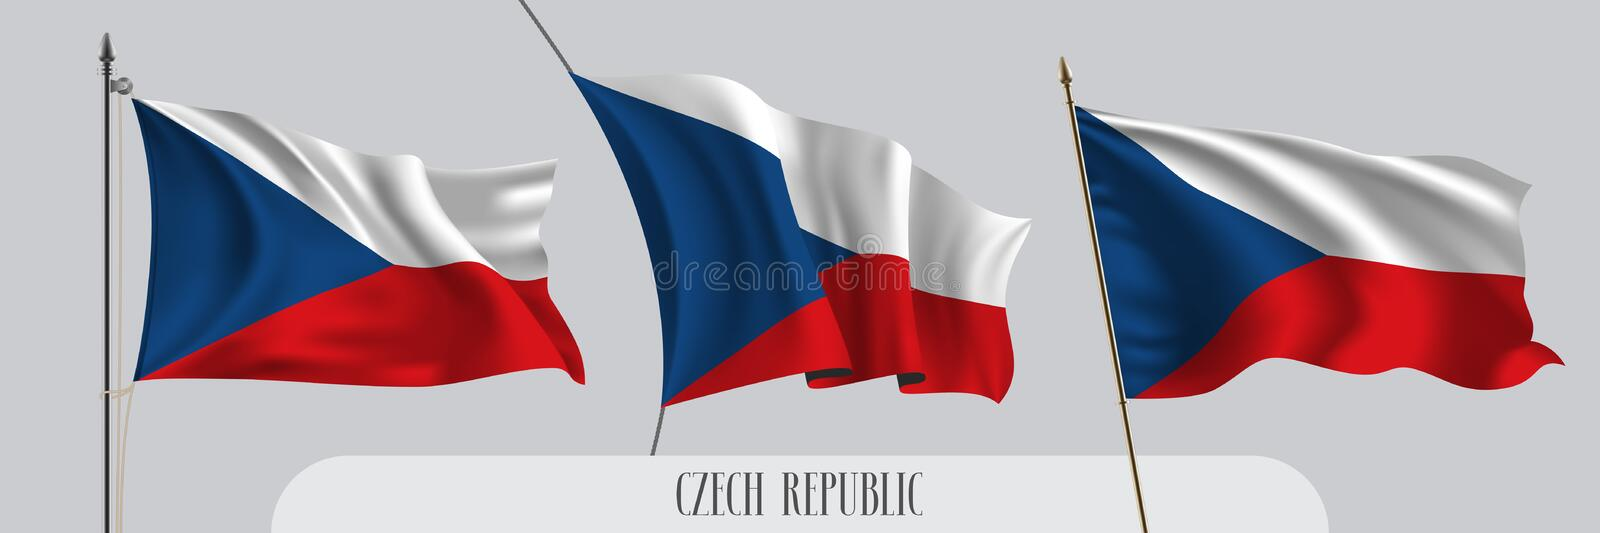 Set of Czech republic waving flag on isolated background vector illustration royalty free illustration